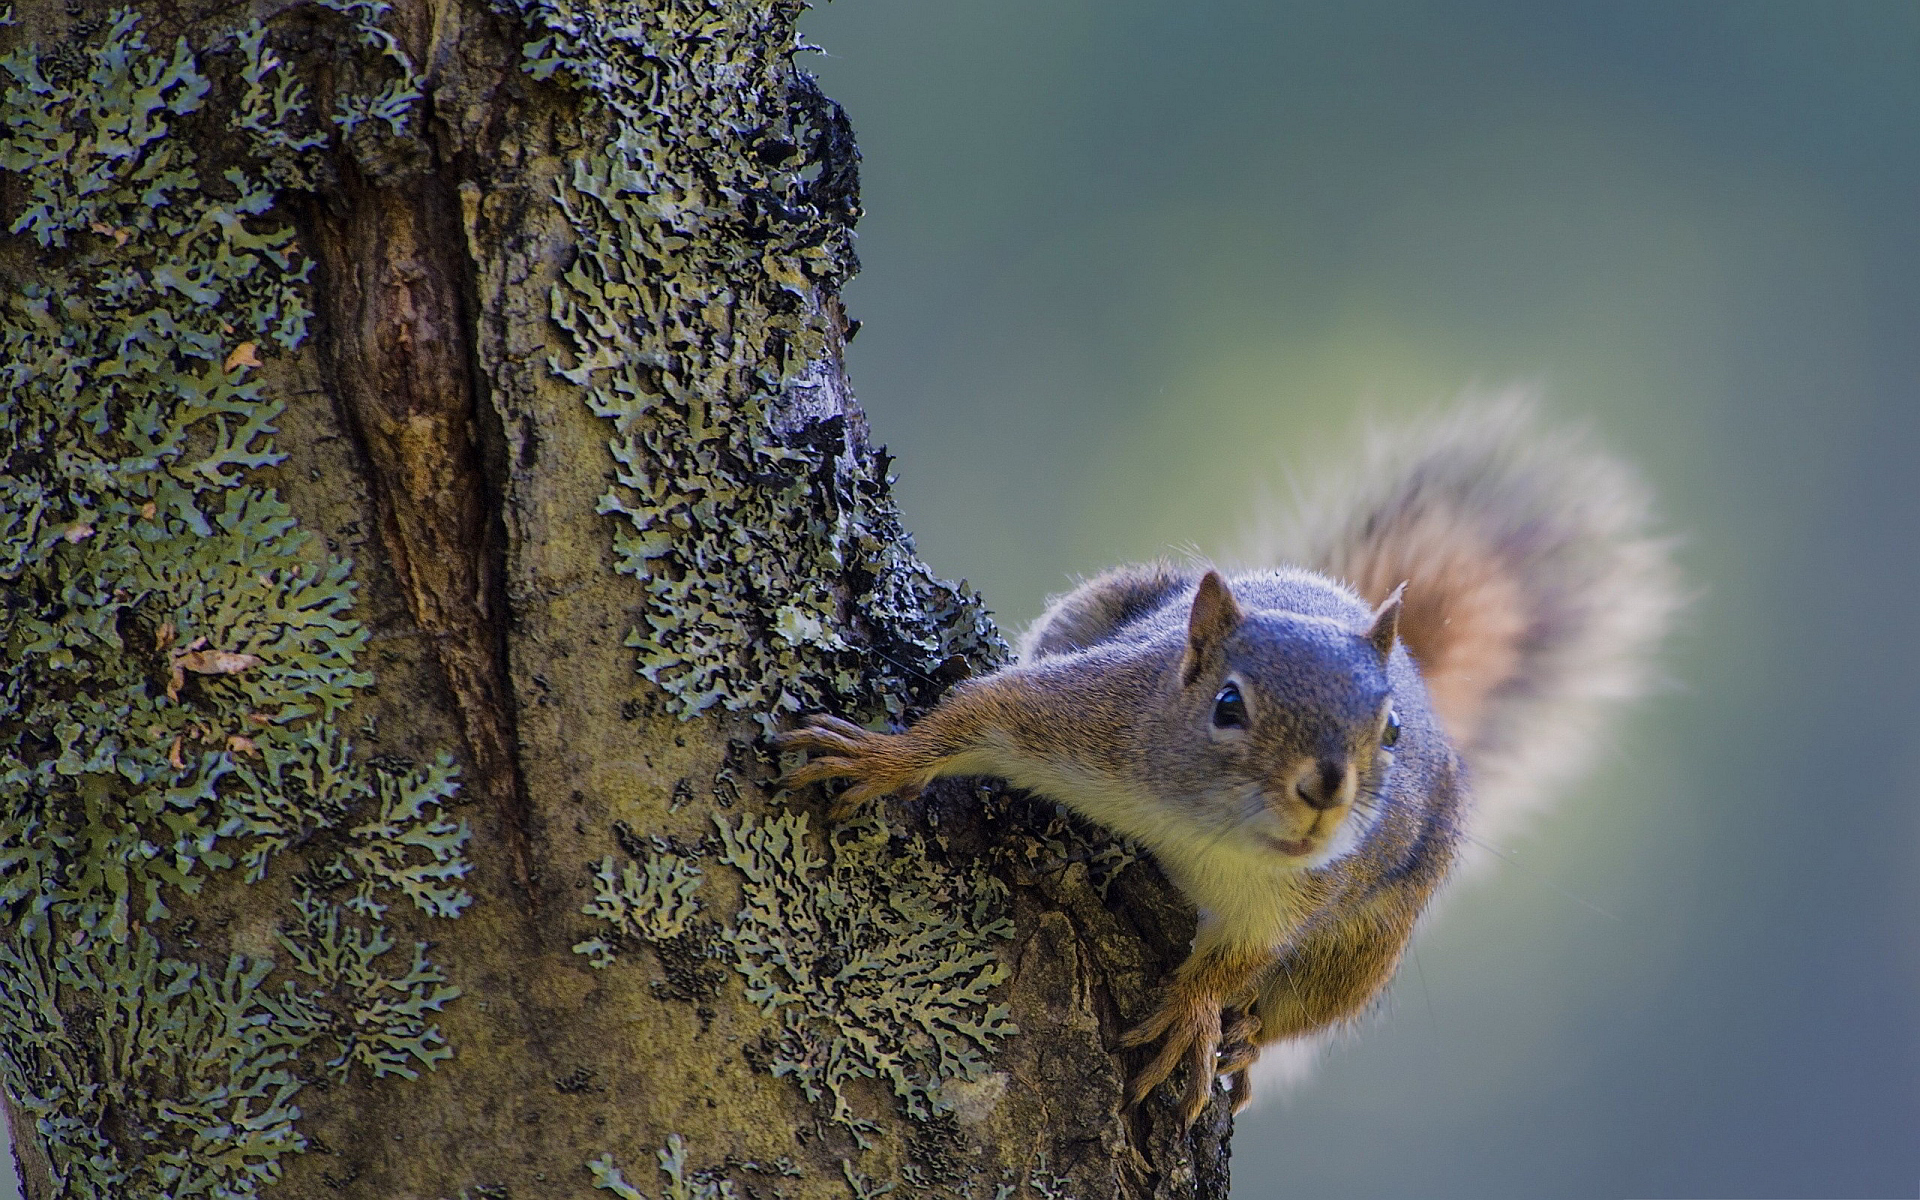 funny squirrel pictures facebook - HD Desktop Wallpapers ...